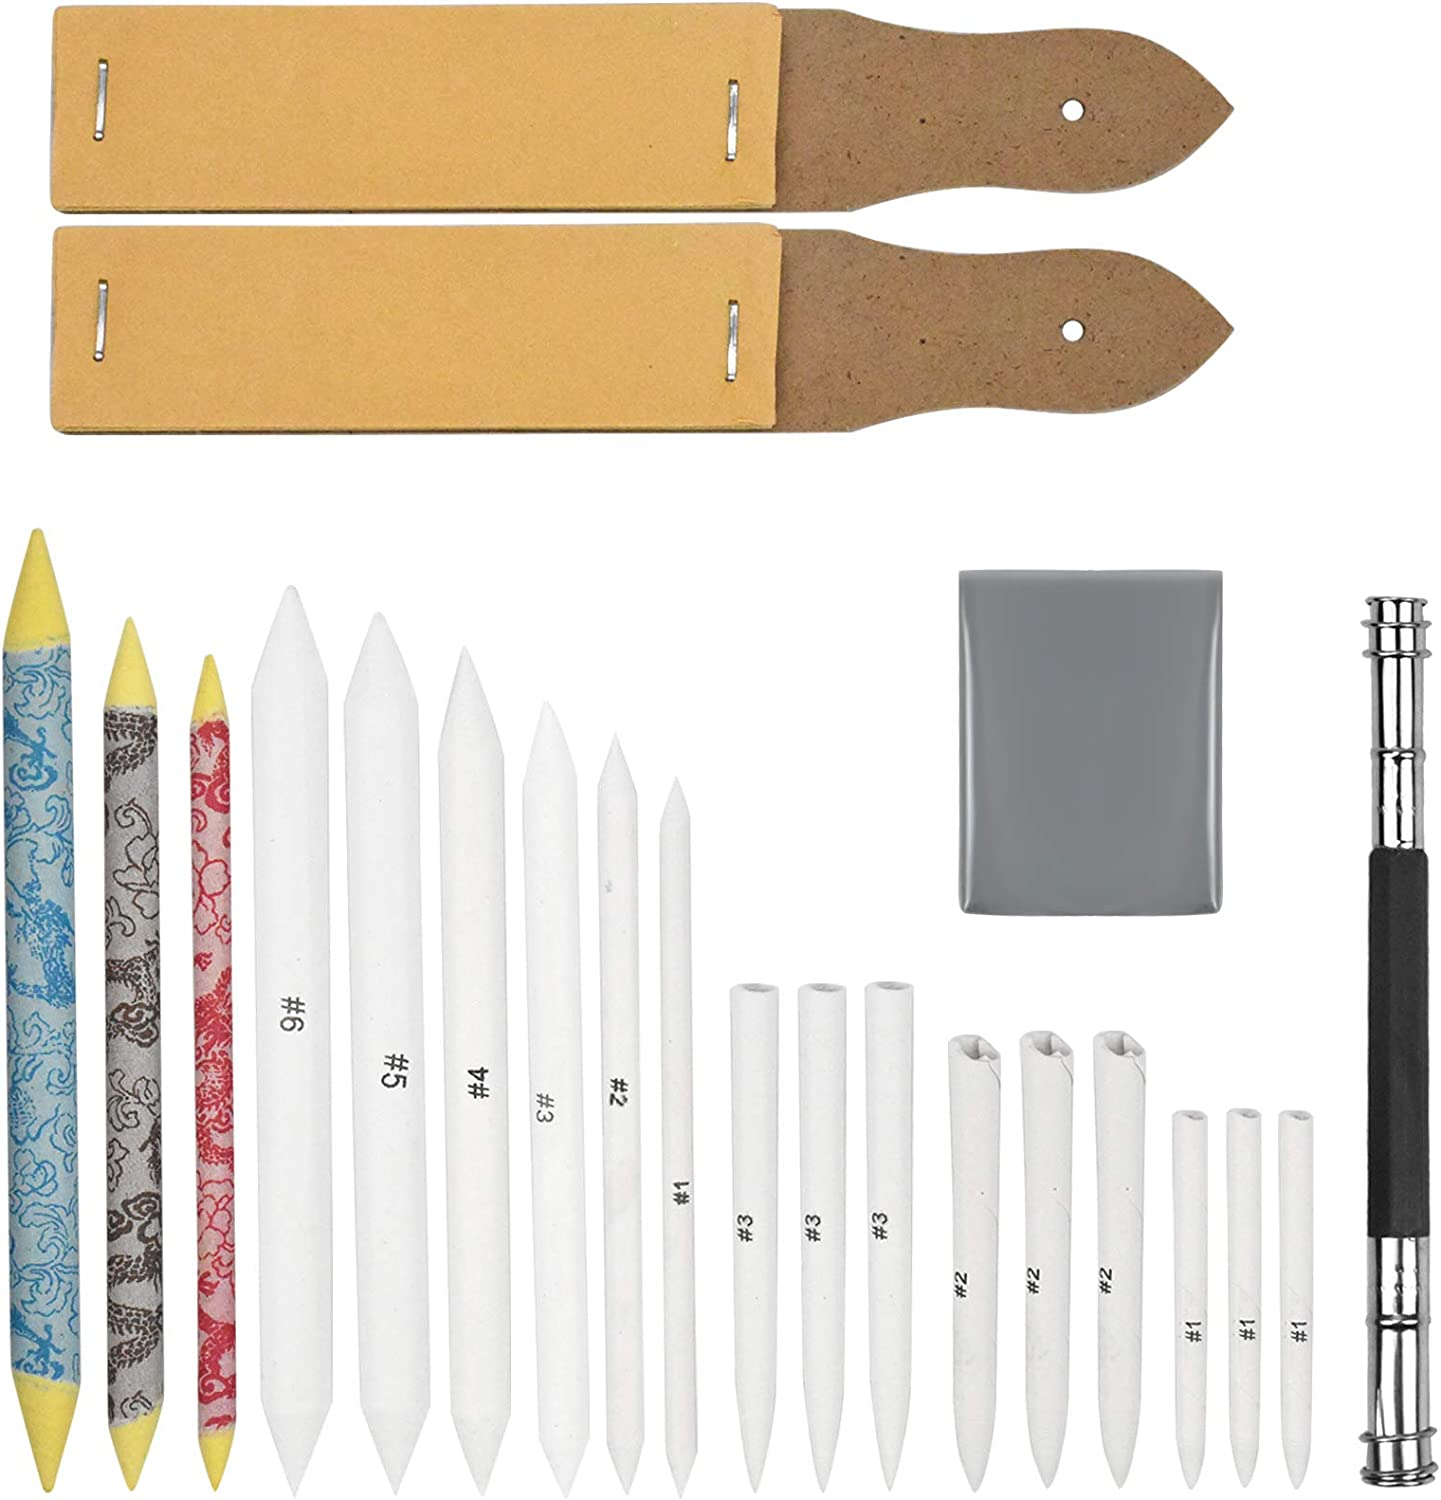 25Pcs Blending Stumps Paper Tortillon Set Kneaded Eraser for Student Artists Sketch Drawing 12 Different Sizes Blending Stumps and Tortillions with Sandpaper Pencil Sharpeners Pencil Extension Tool